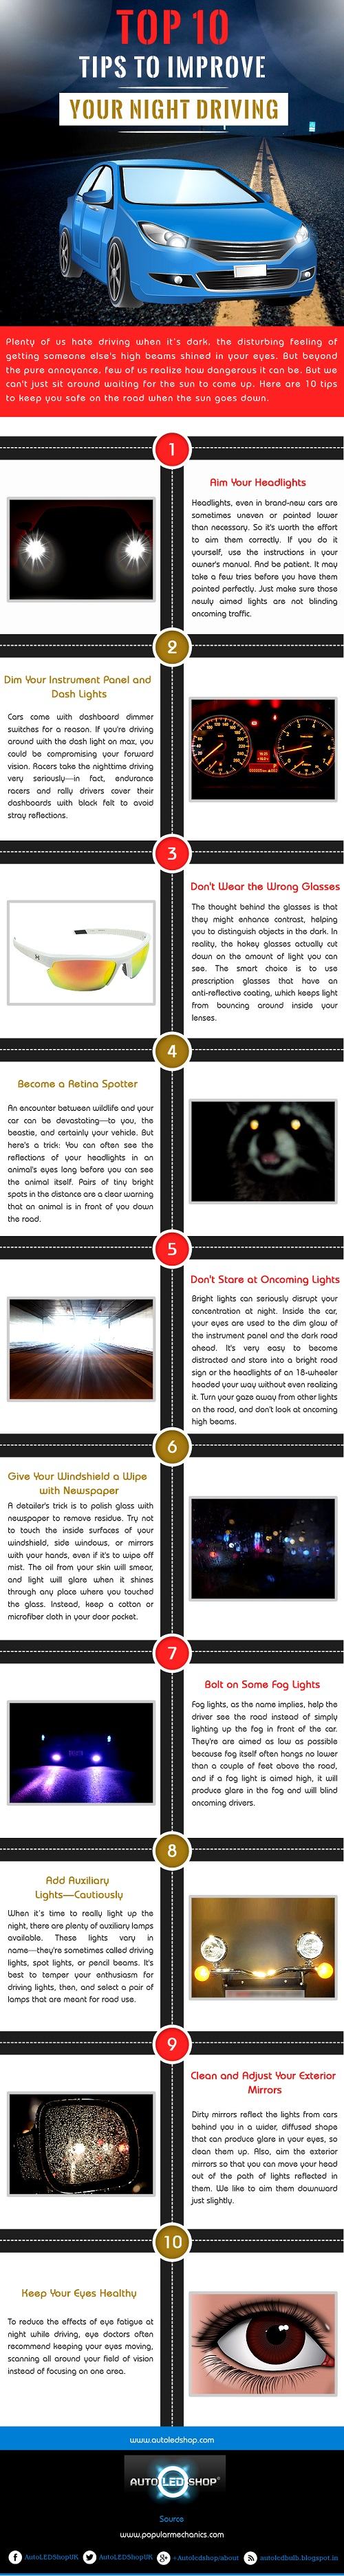 Tips to Improve Your Night Driving